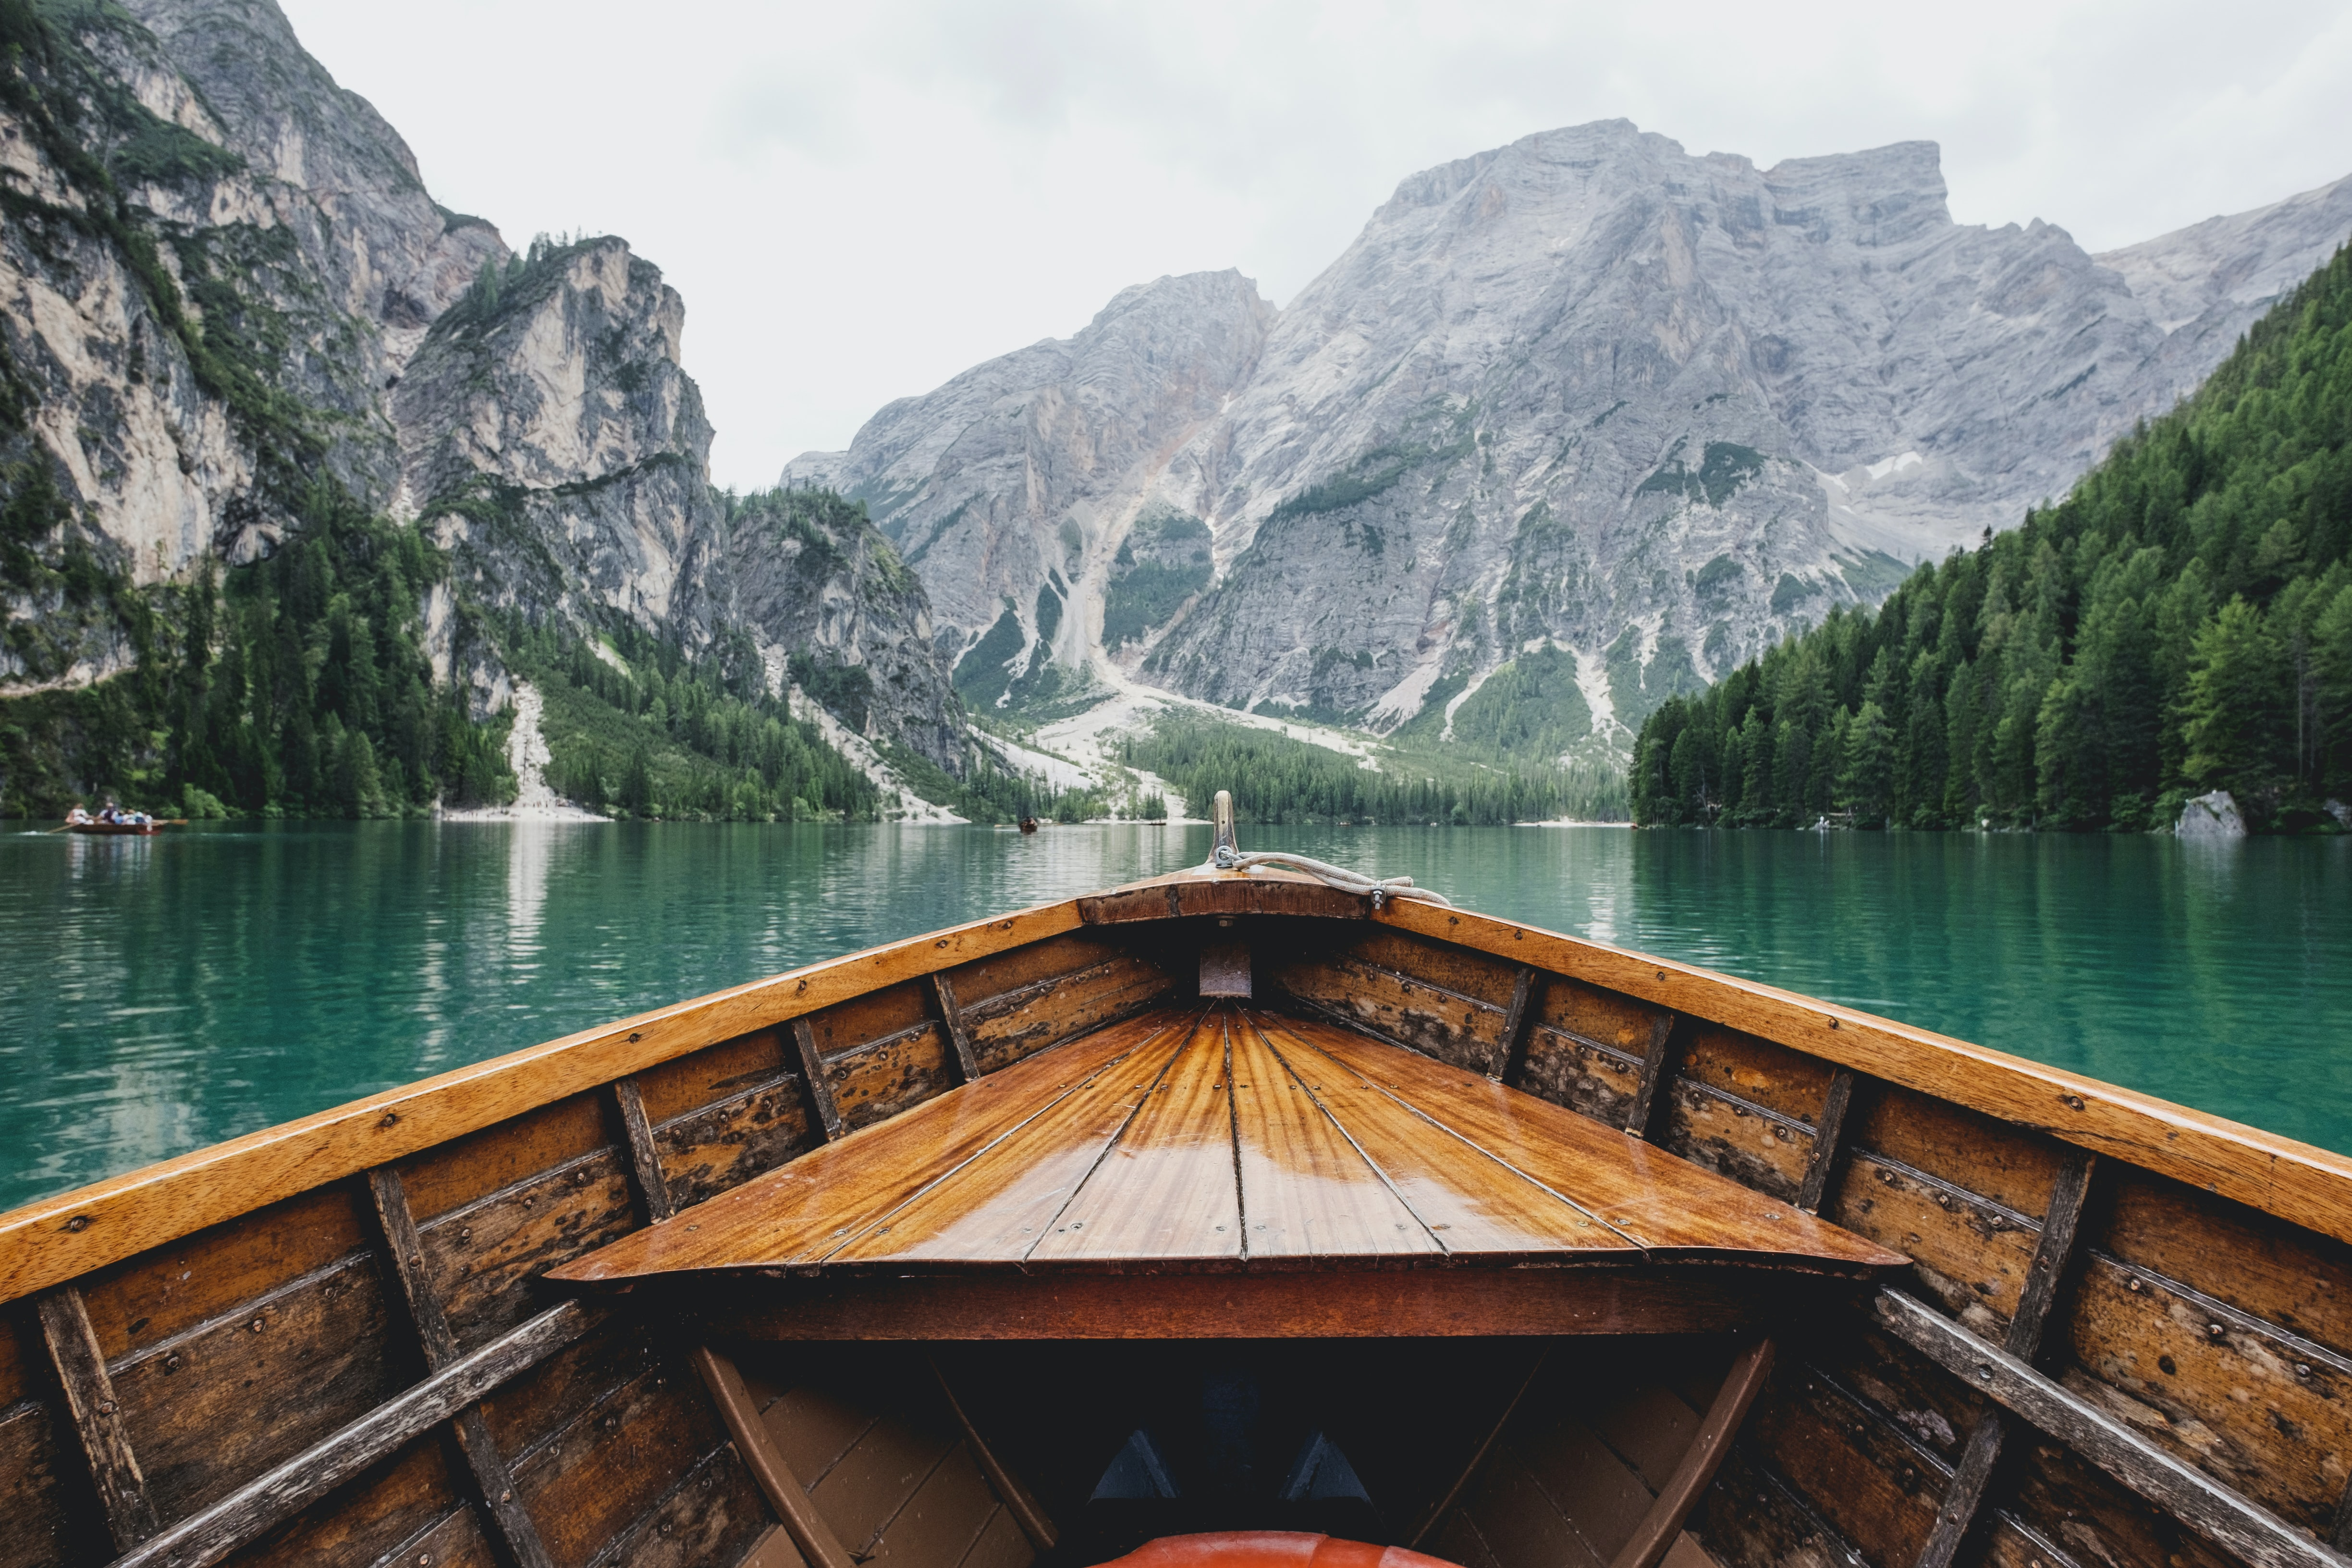 View from a boat on the emerald-green Lago di Braies and the nearby mountains